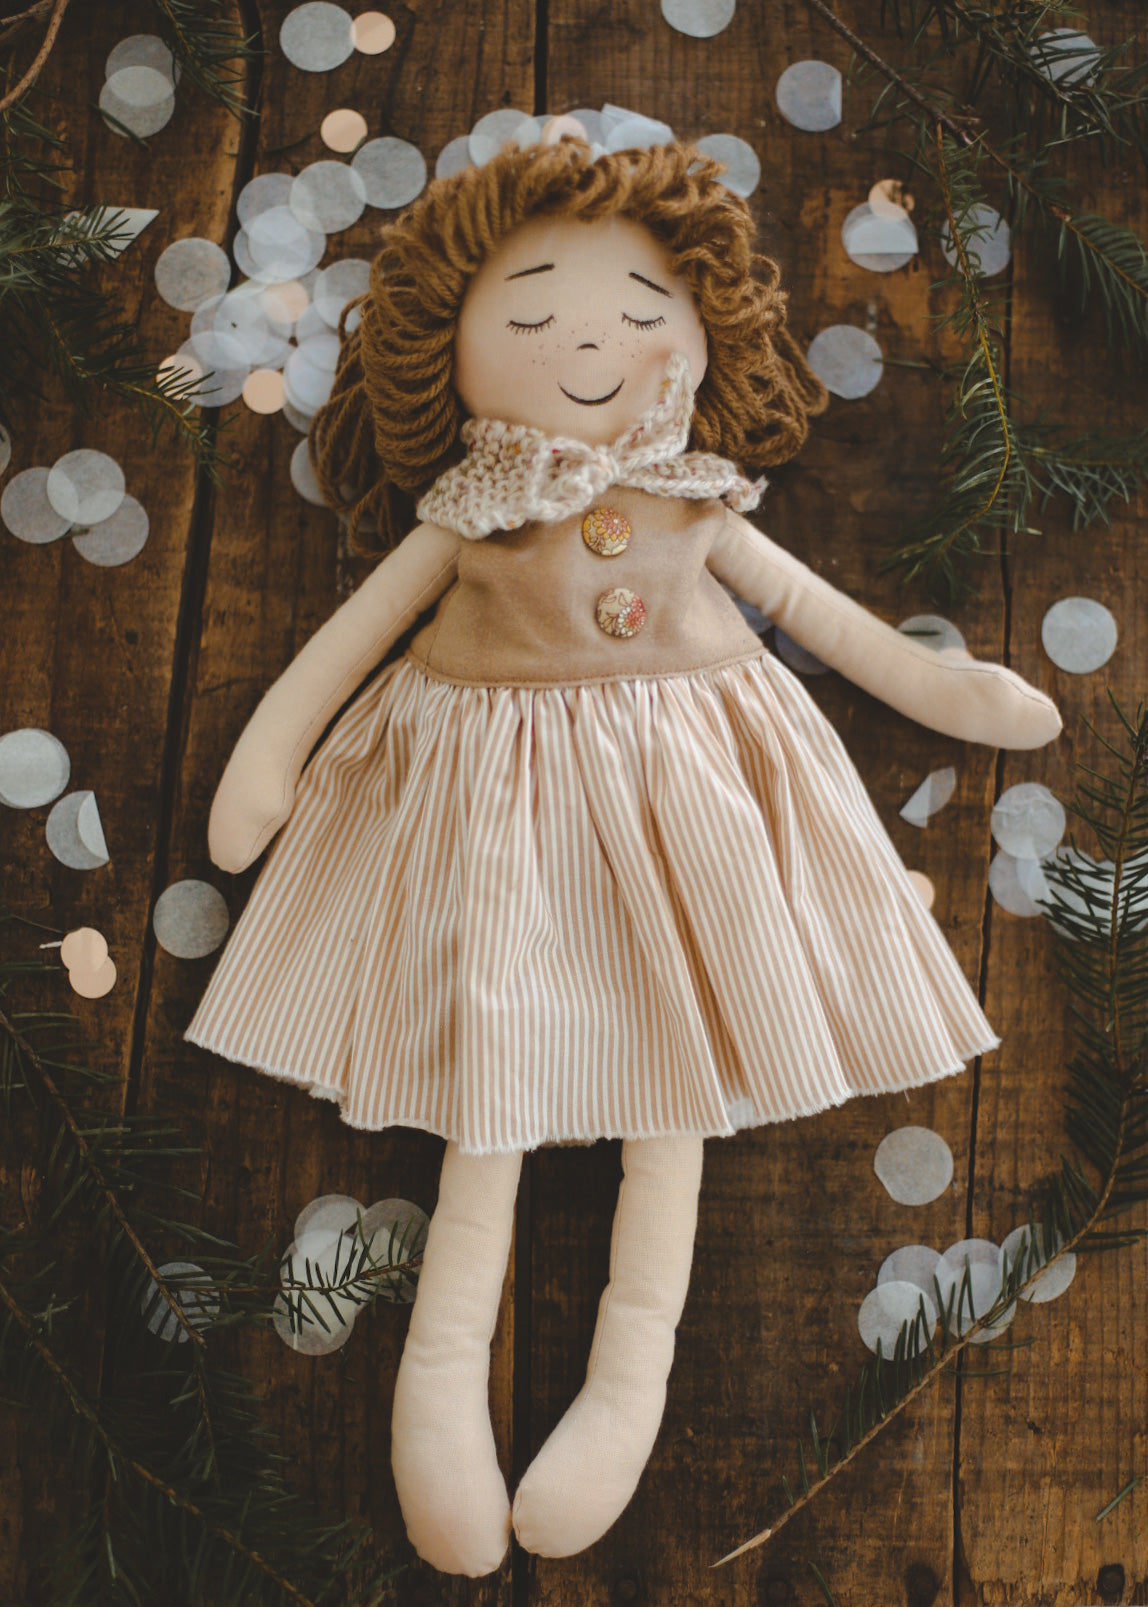 LIZ - Handmade Heirloom Doll